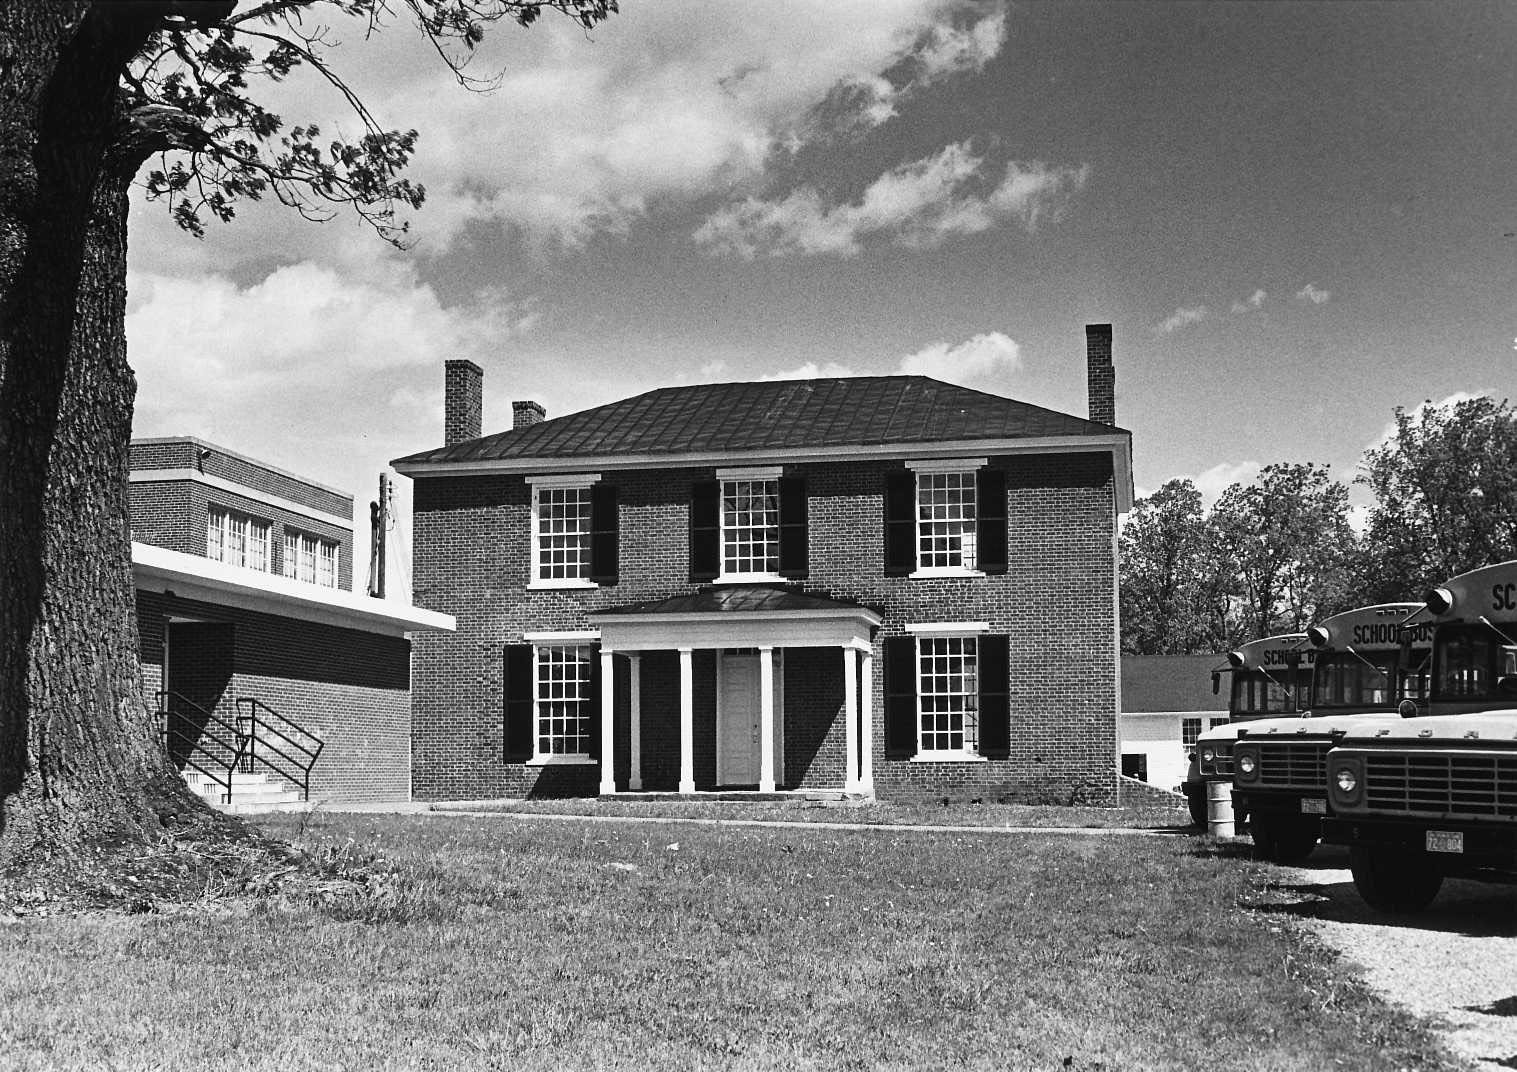 Photo from National Register nomination. https://www.dhr.virginia.gov/historic-registers/009-0047/